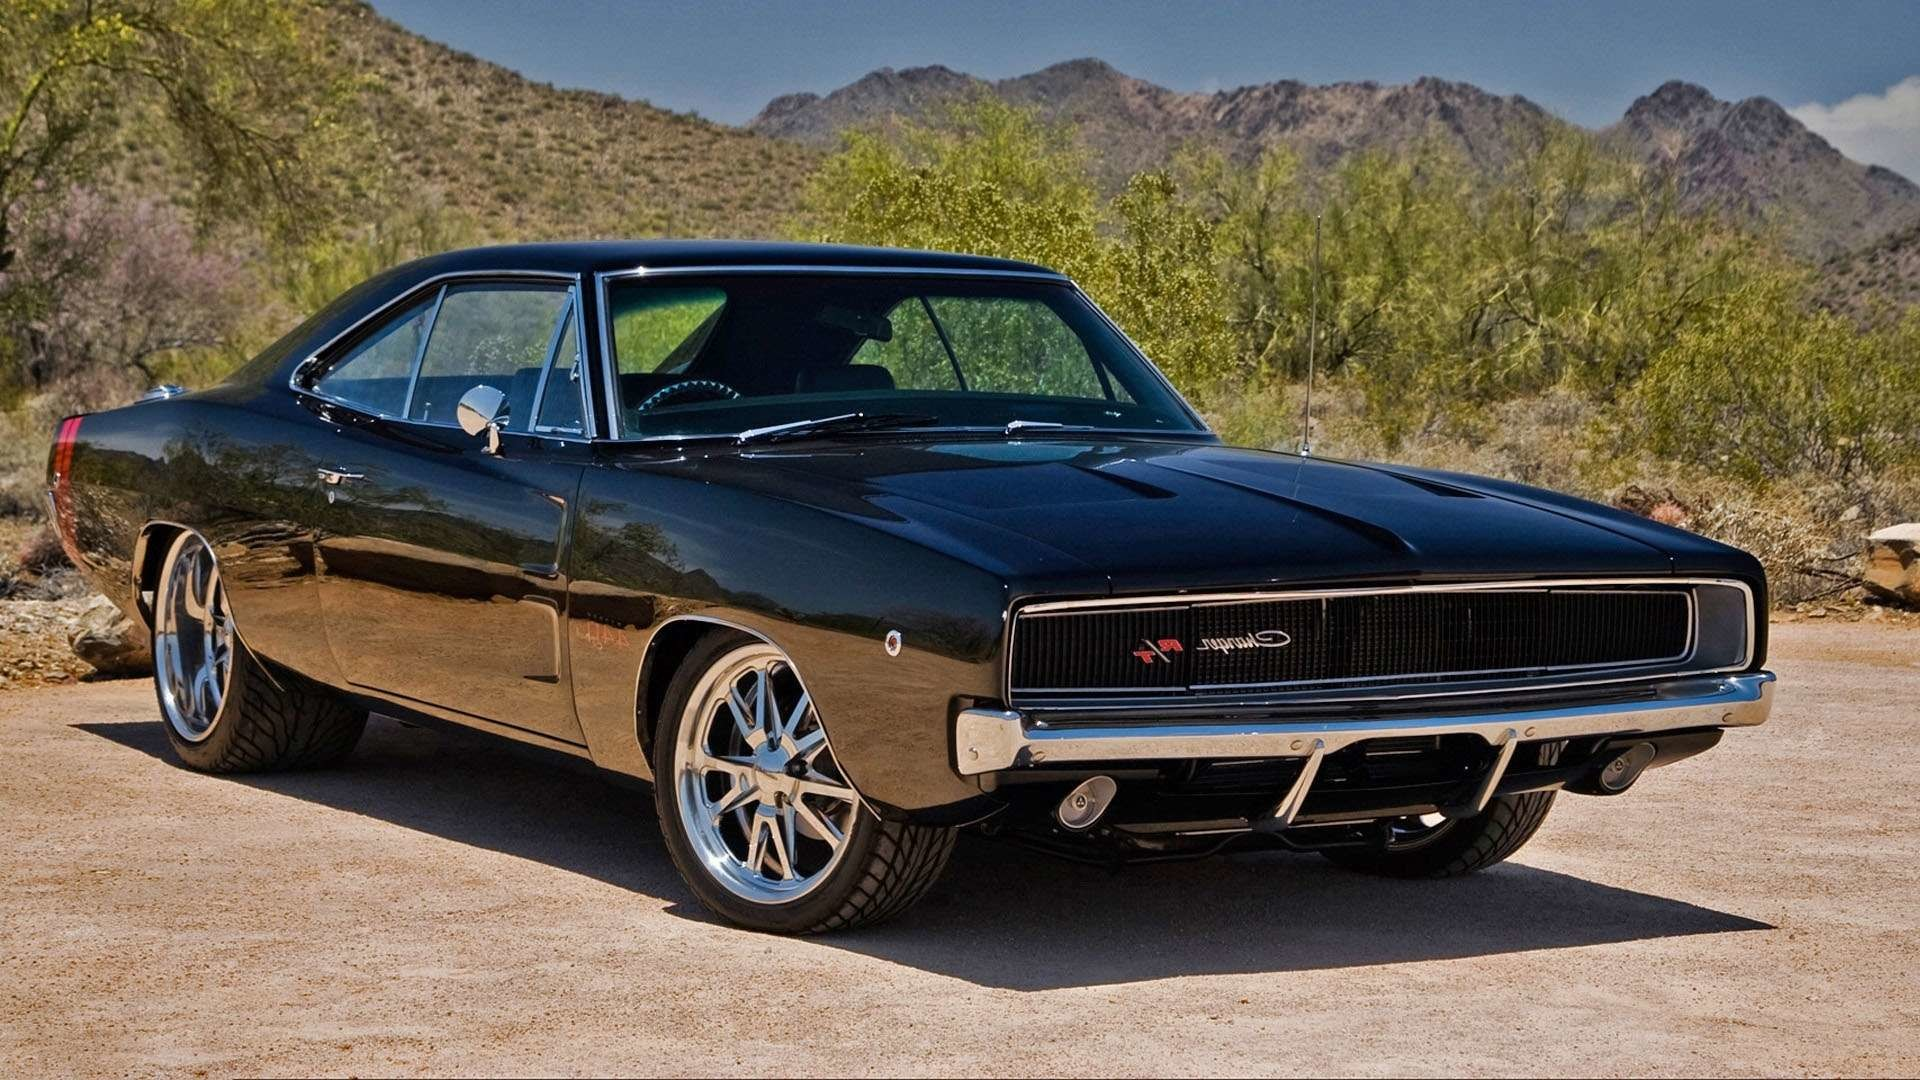 Vehicles For 1969 Dodge Charger Wallpaper Dodge Charger 1970 Full Black 1920x1080 Wallpaper Teahub Io